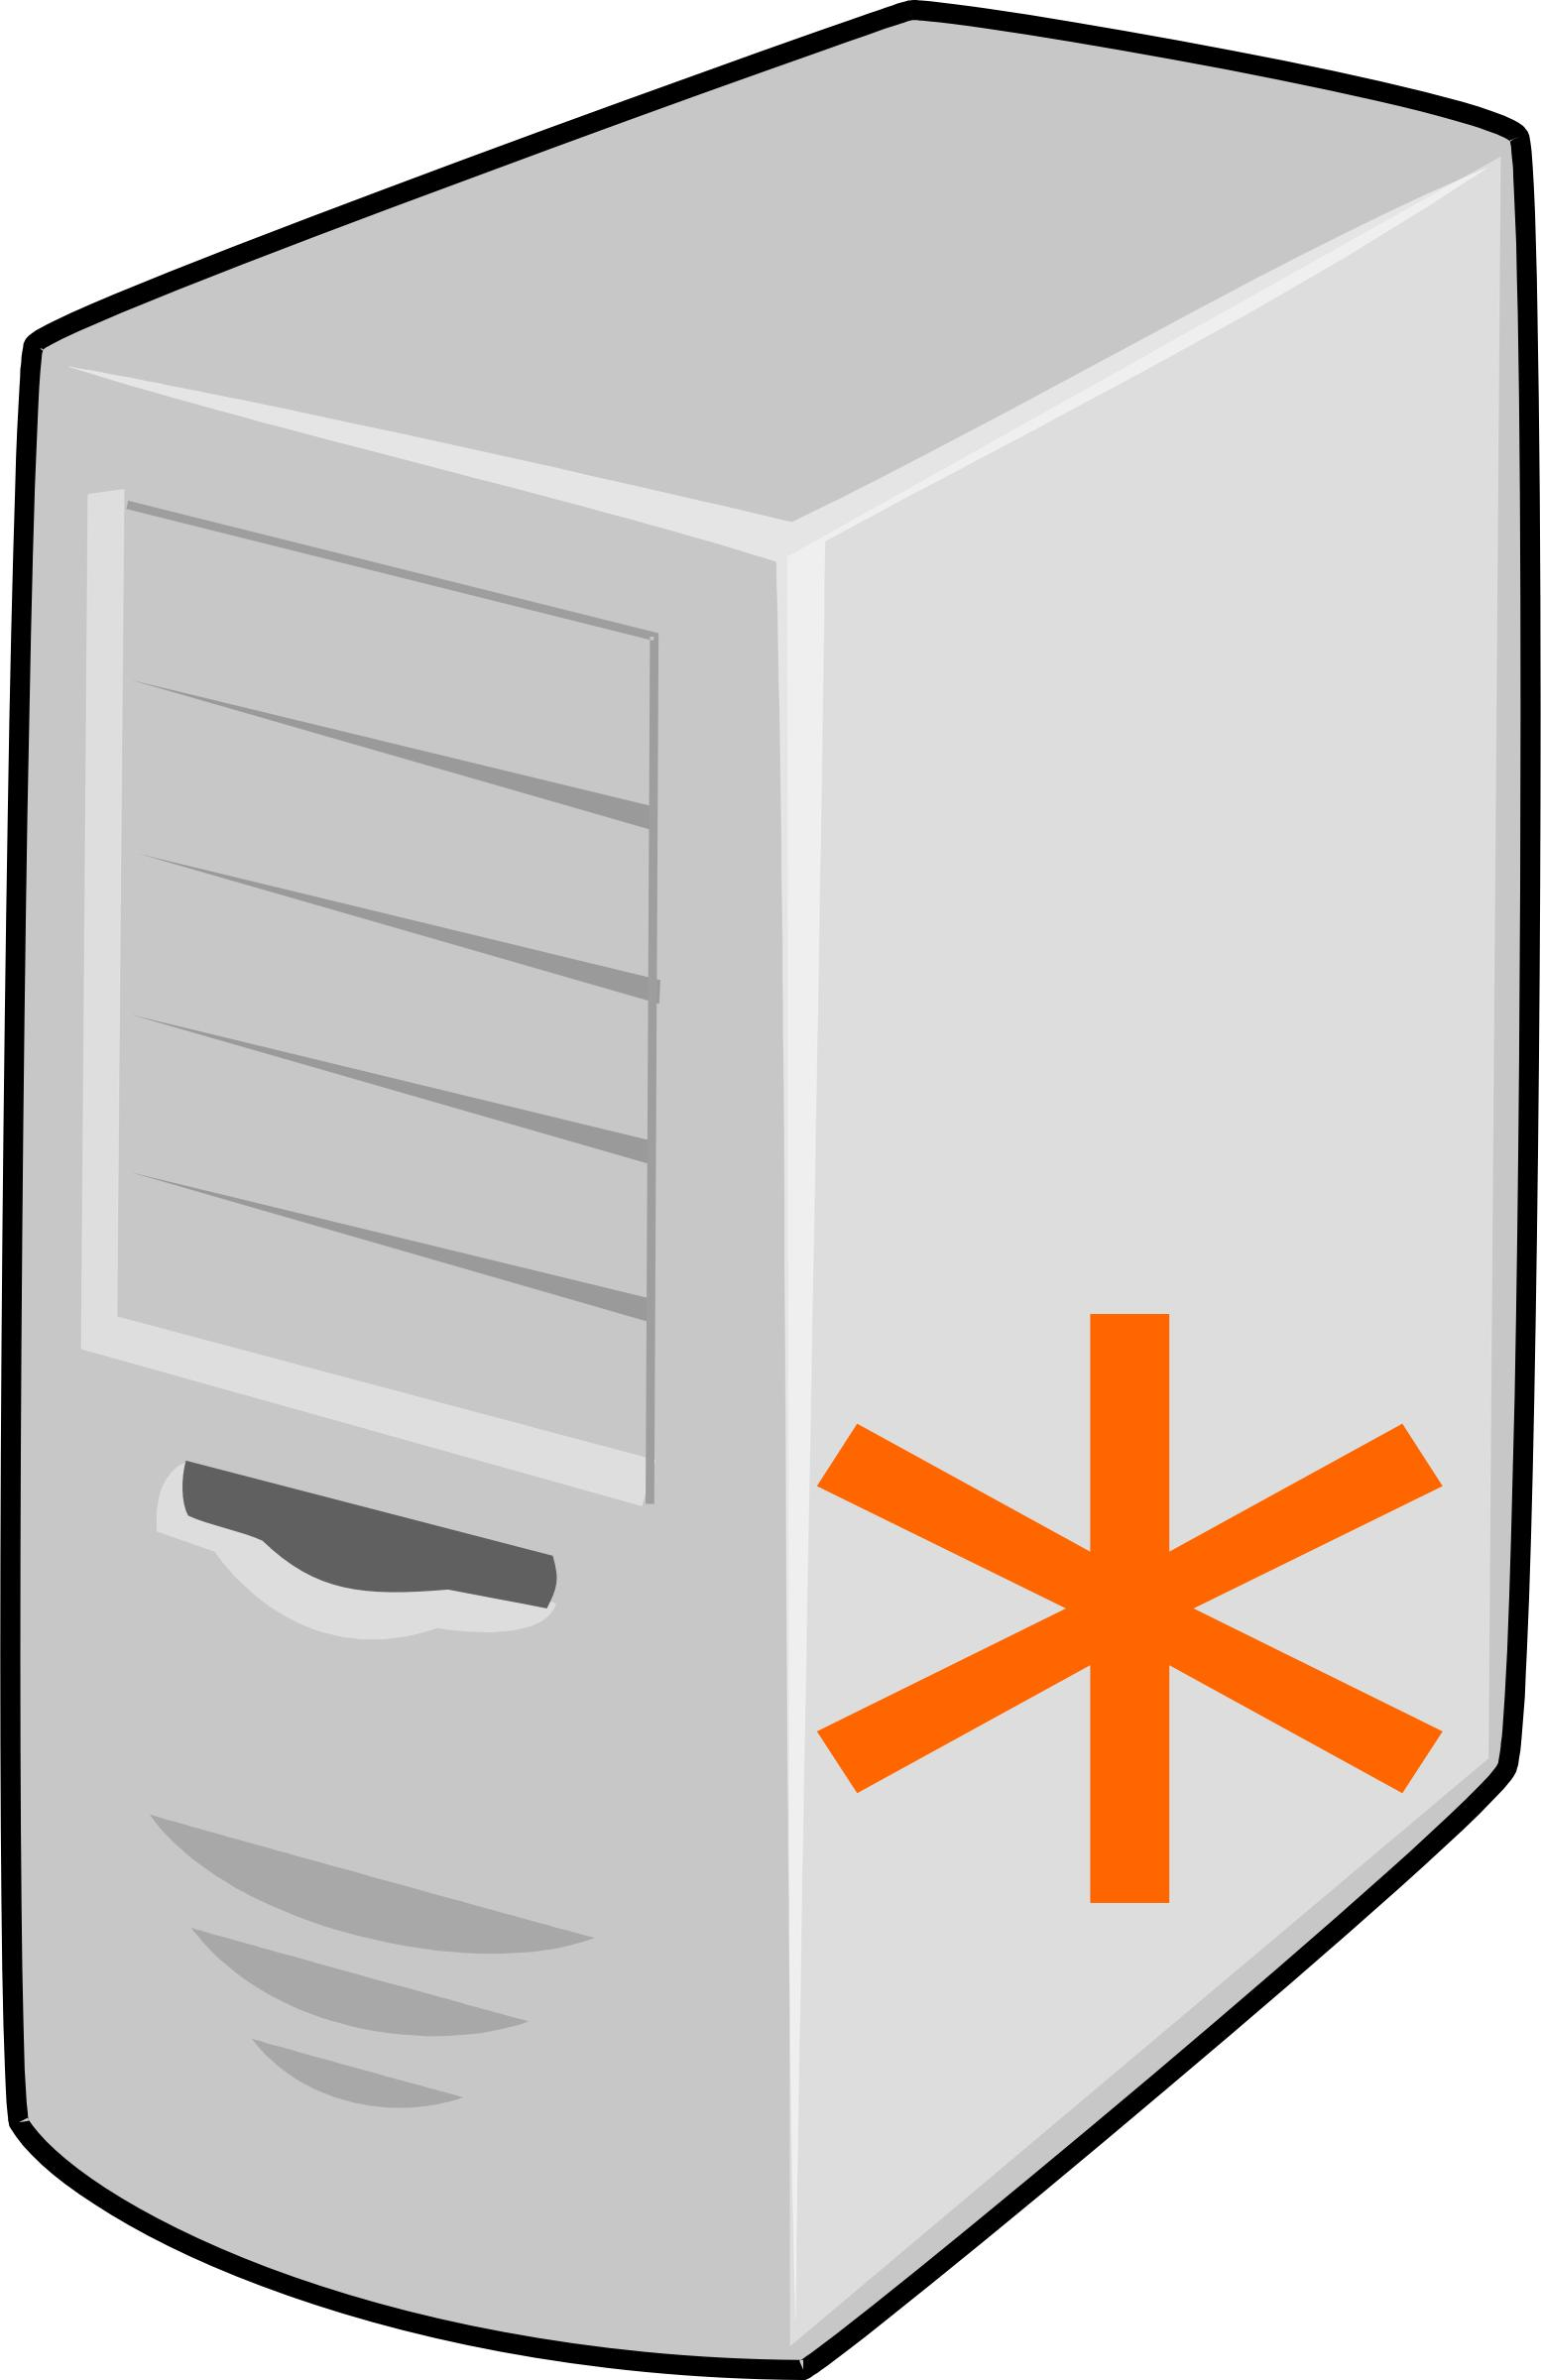 Server clipart server icon. Voip icons png free